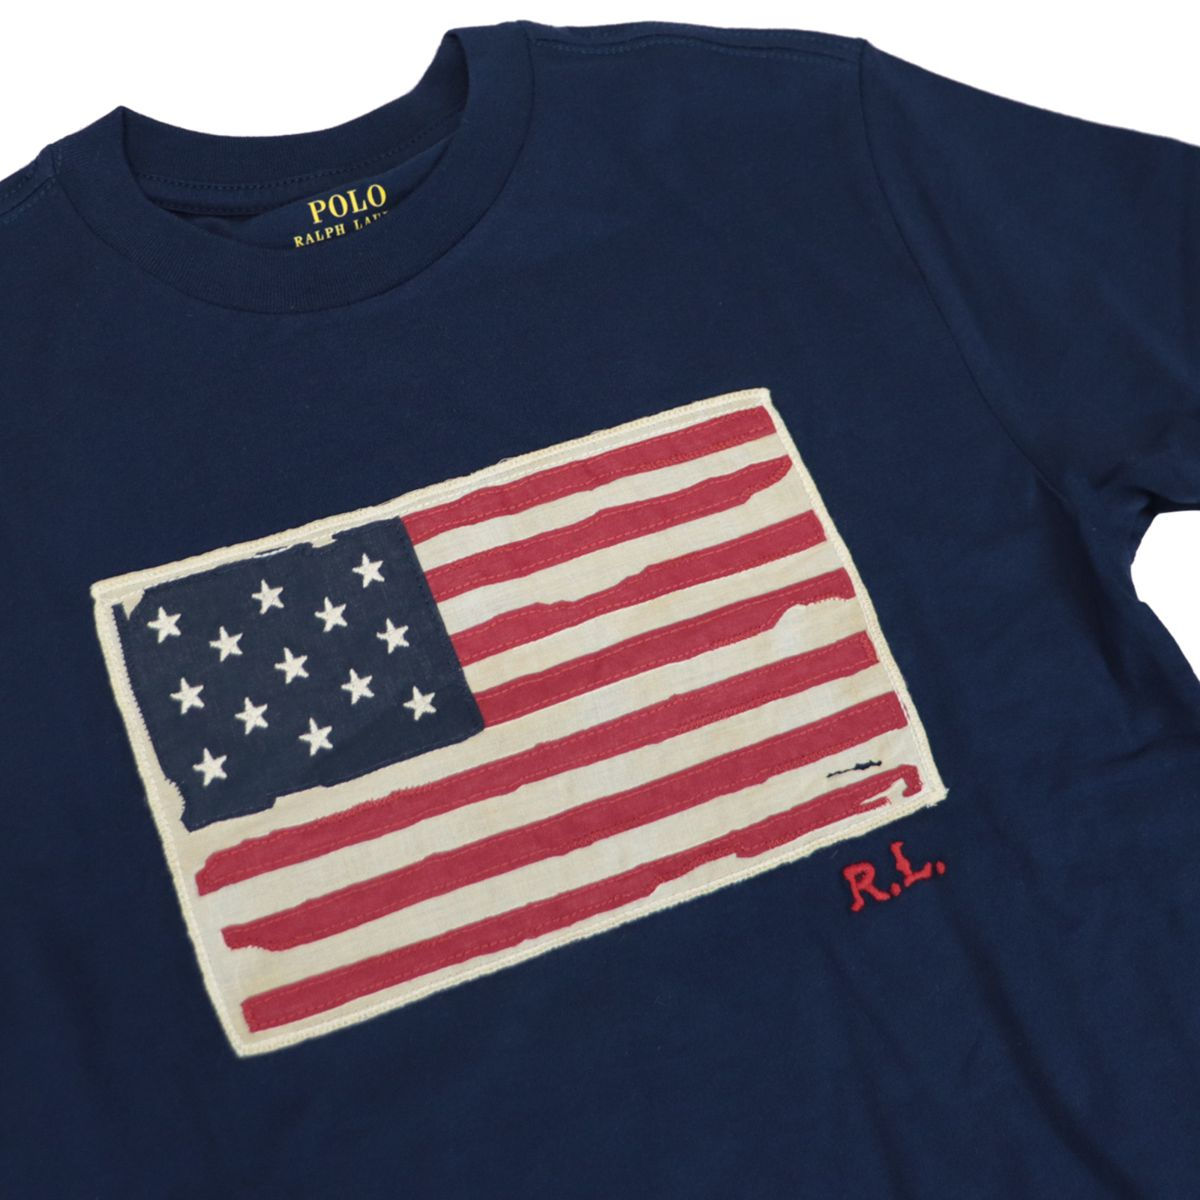 Cotton t-shirt with front logo flag print Navy Polo Ralph Lauren